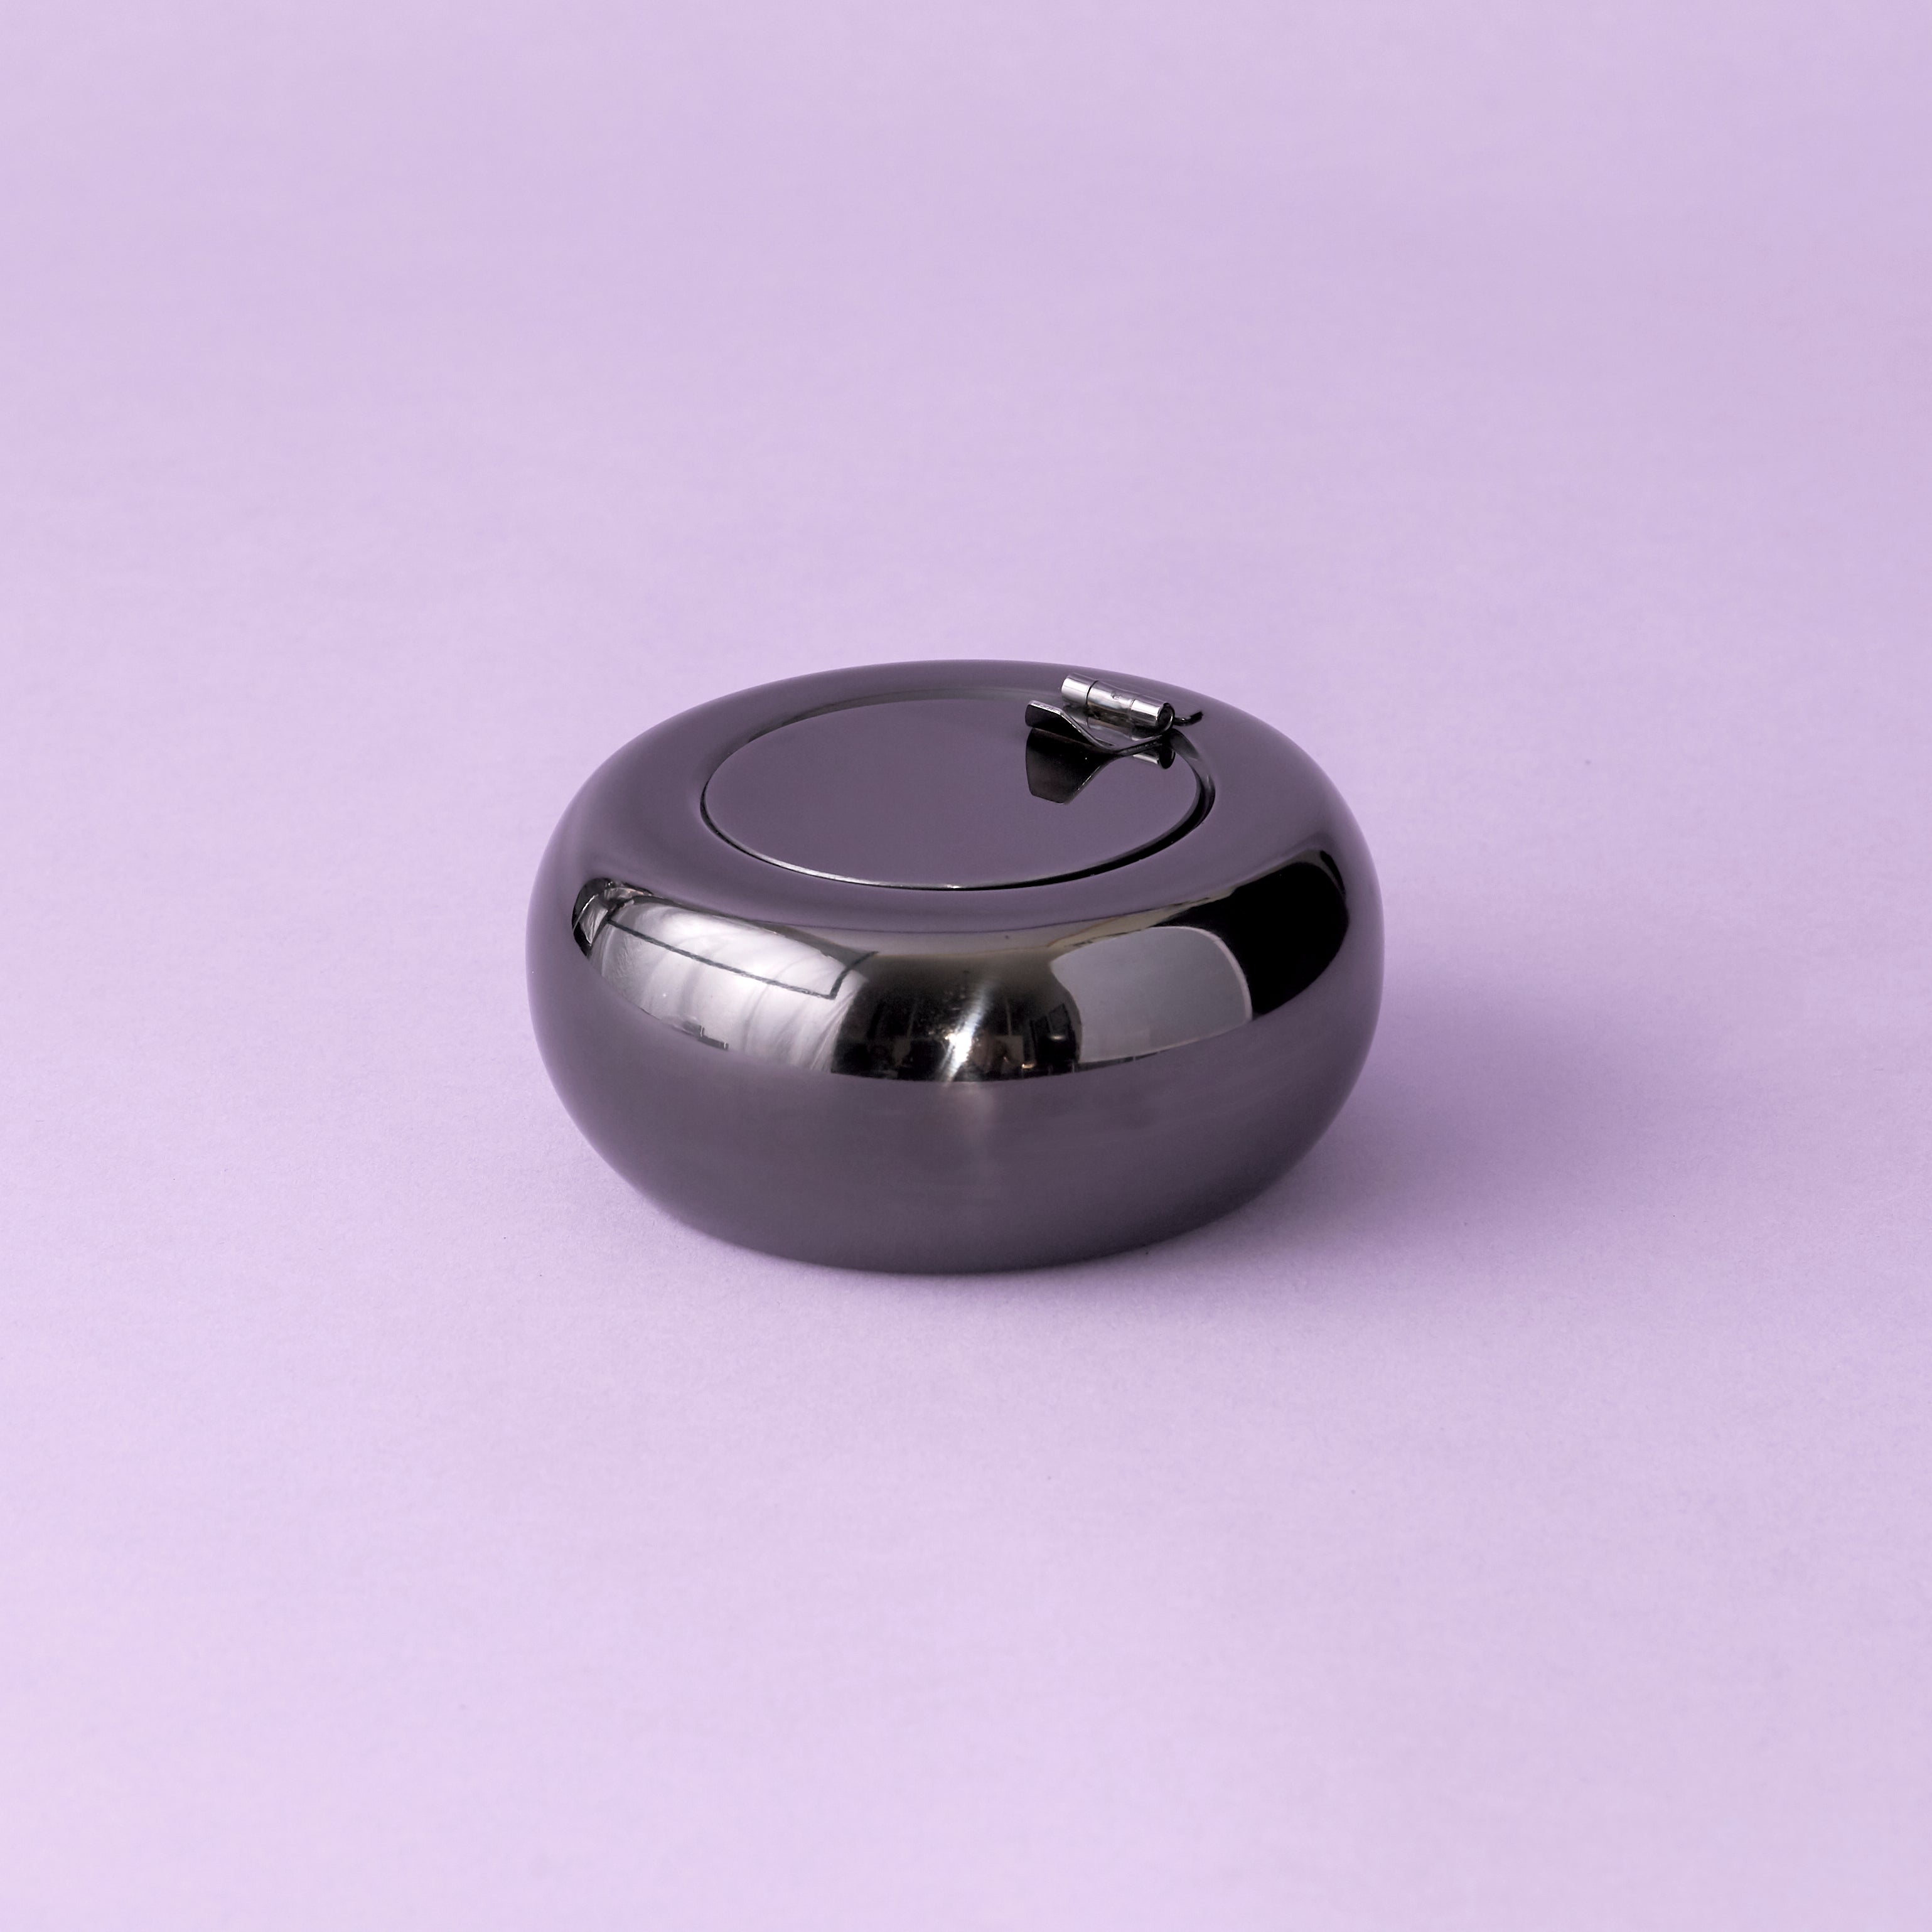 Round Ashtray with Lid